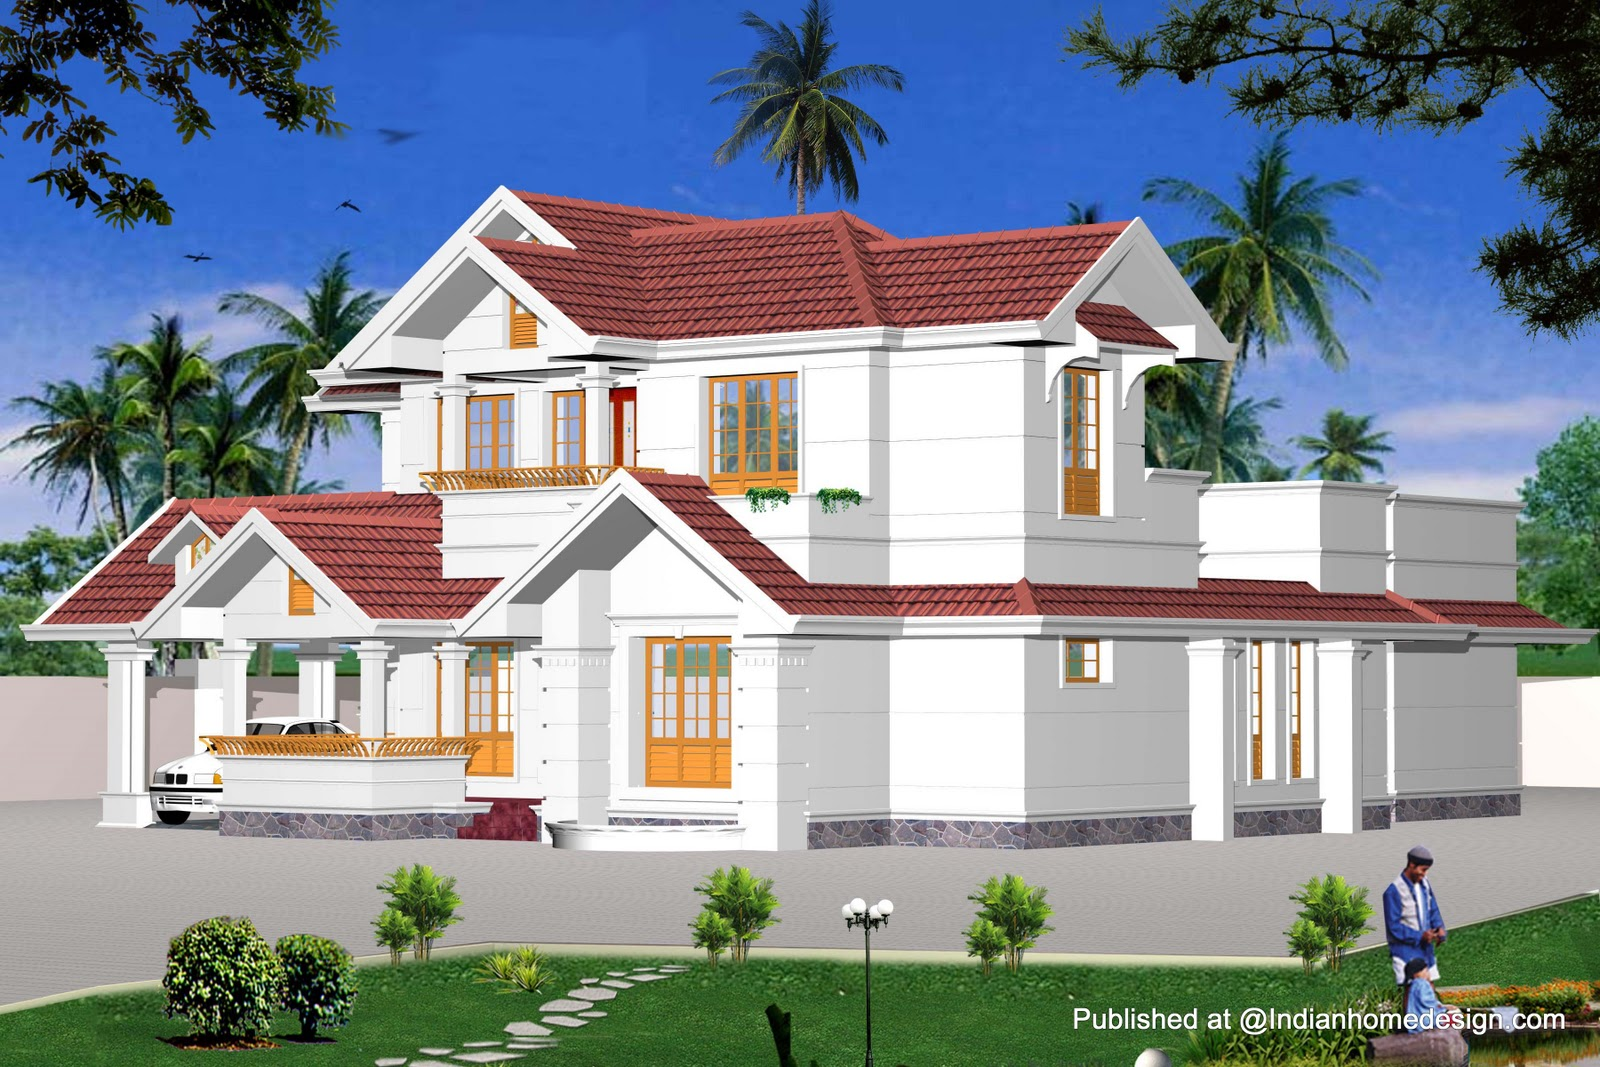 S b property deal abohar for House outside design in india